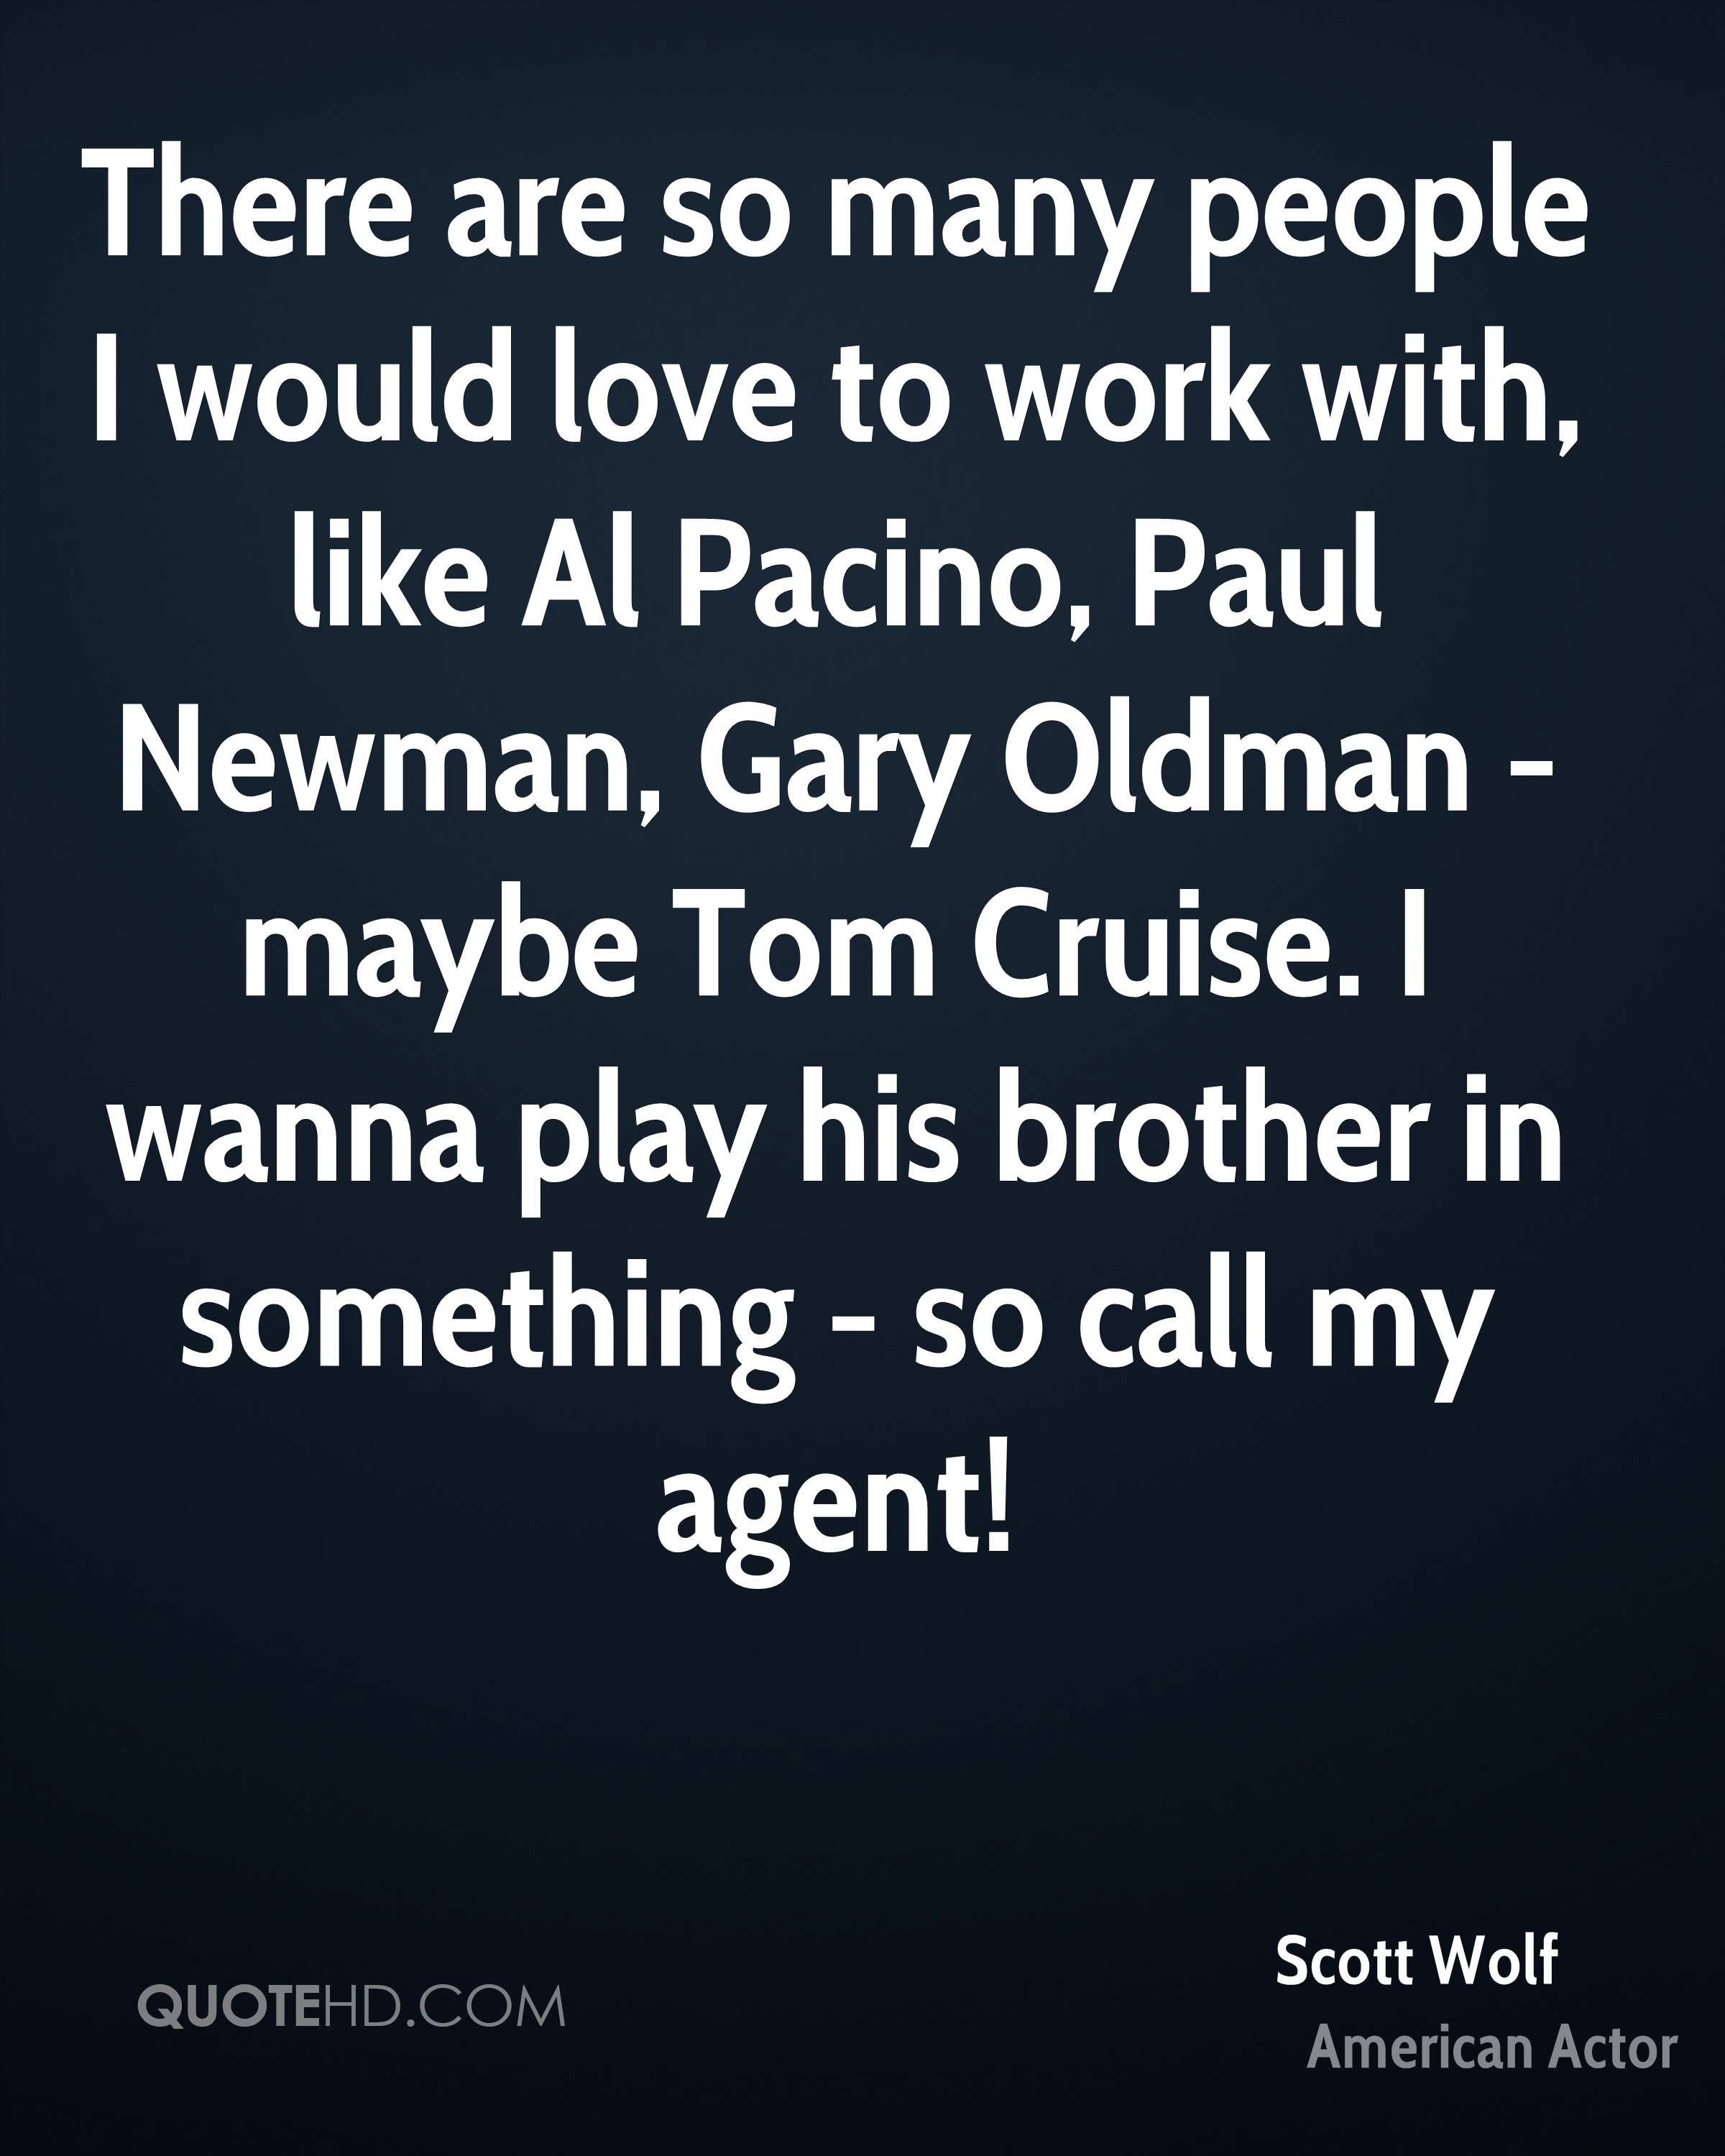 There are so many people I would love to work with, like Al Pacino, Paul Newman, Gary Oldman - maybe Tom Cruise. I wanna play his brother in something - so call my agent!